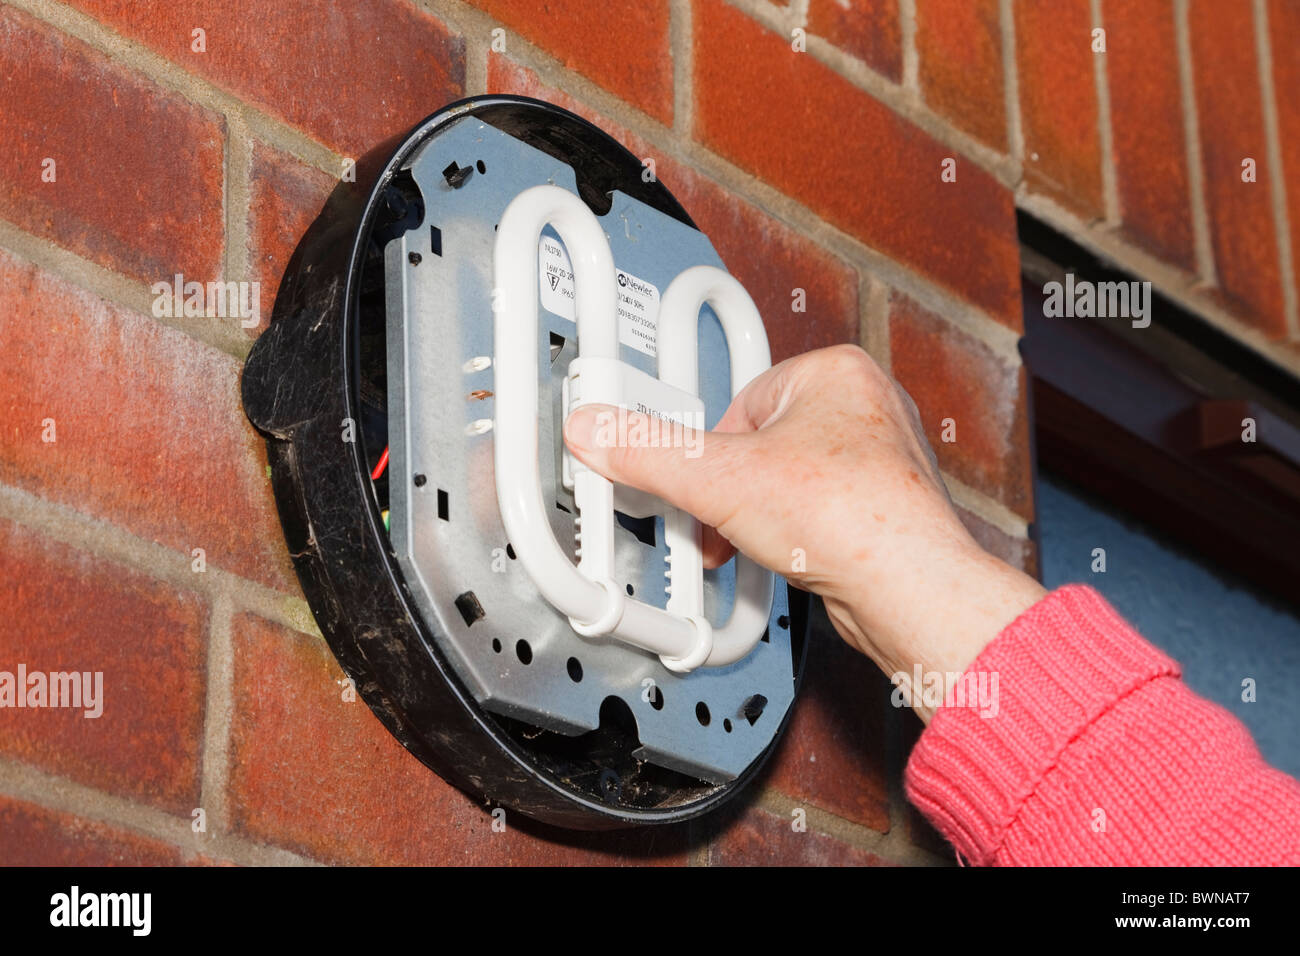 UK, Europe. Person fitting an energy saving CFL 2-pin lamp bulb in an outside light - Stock Image